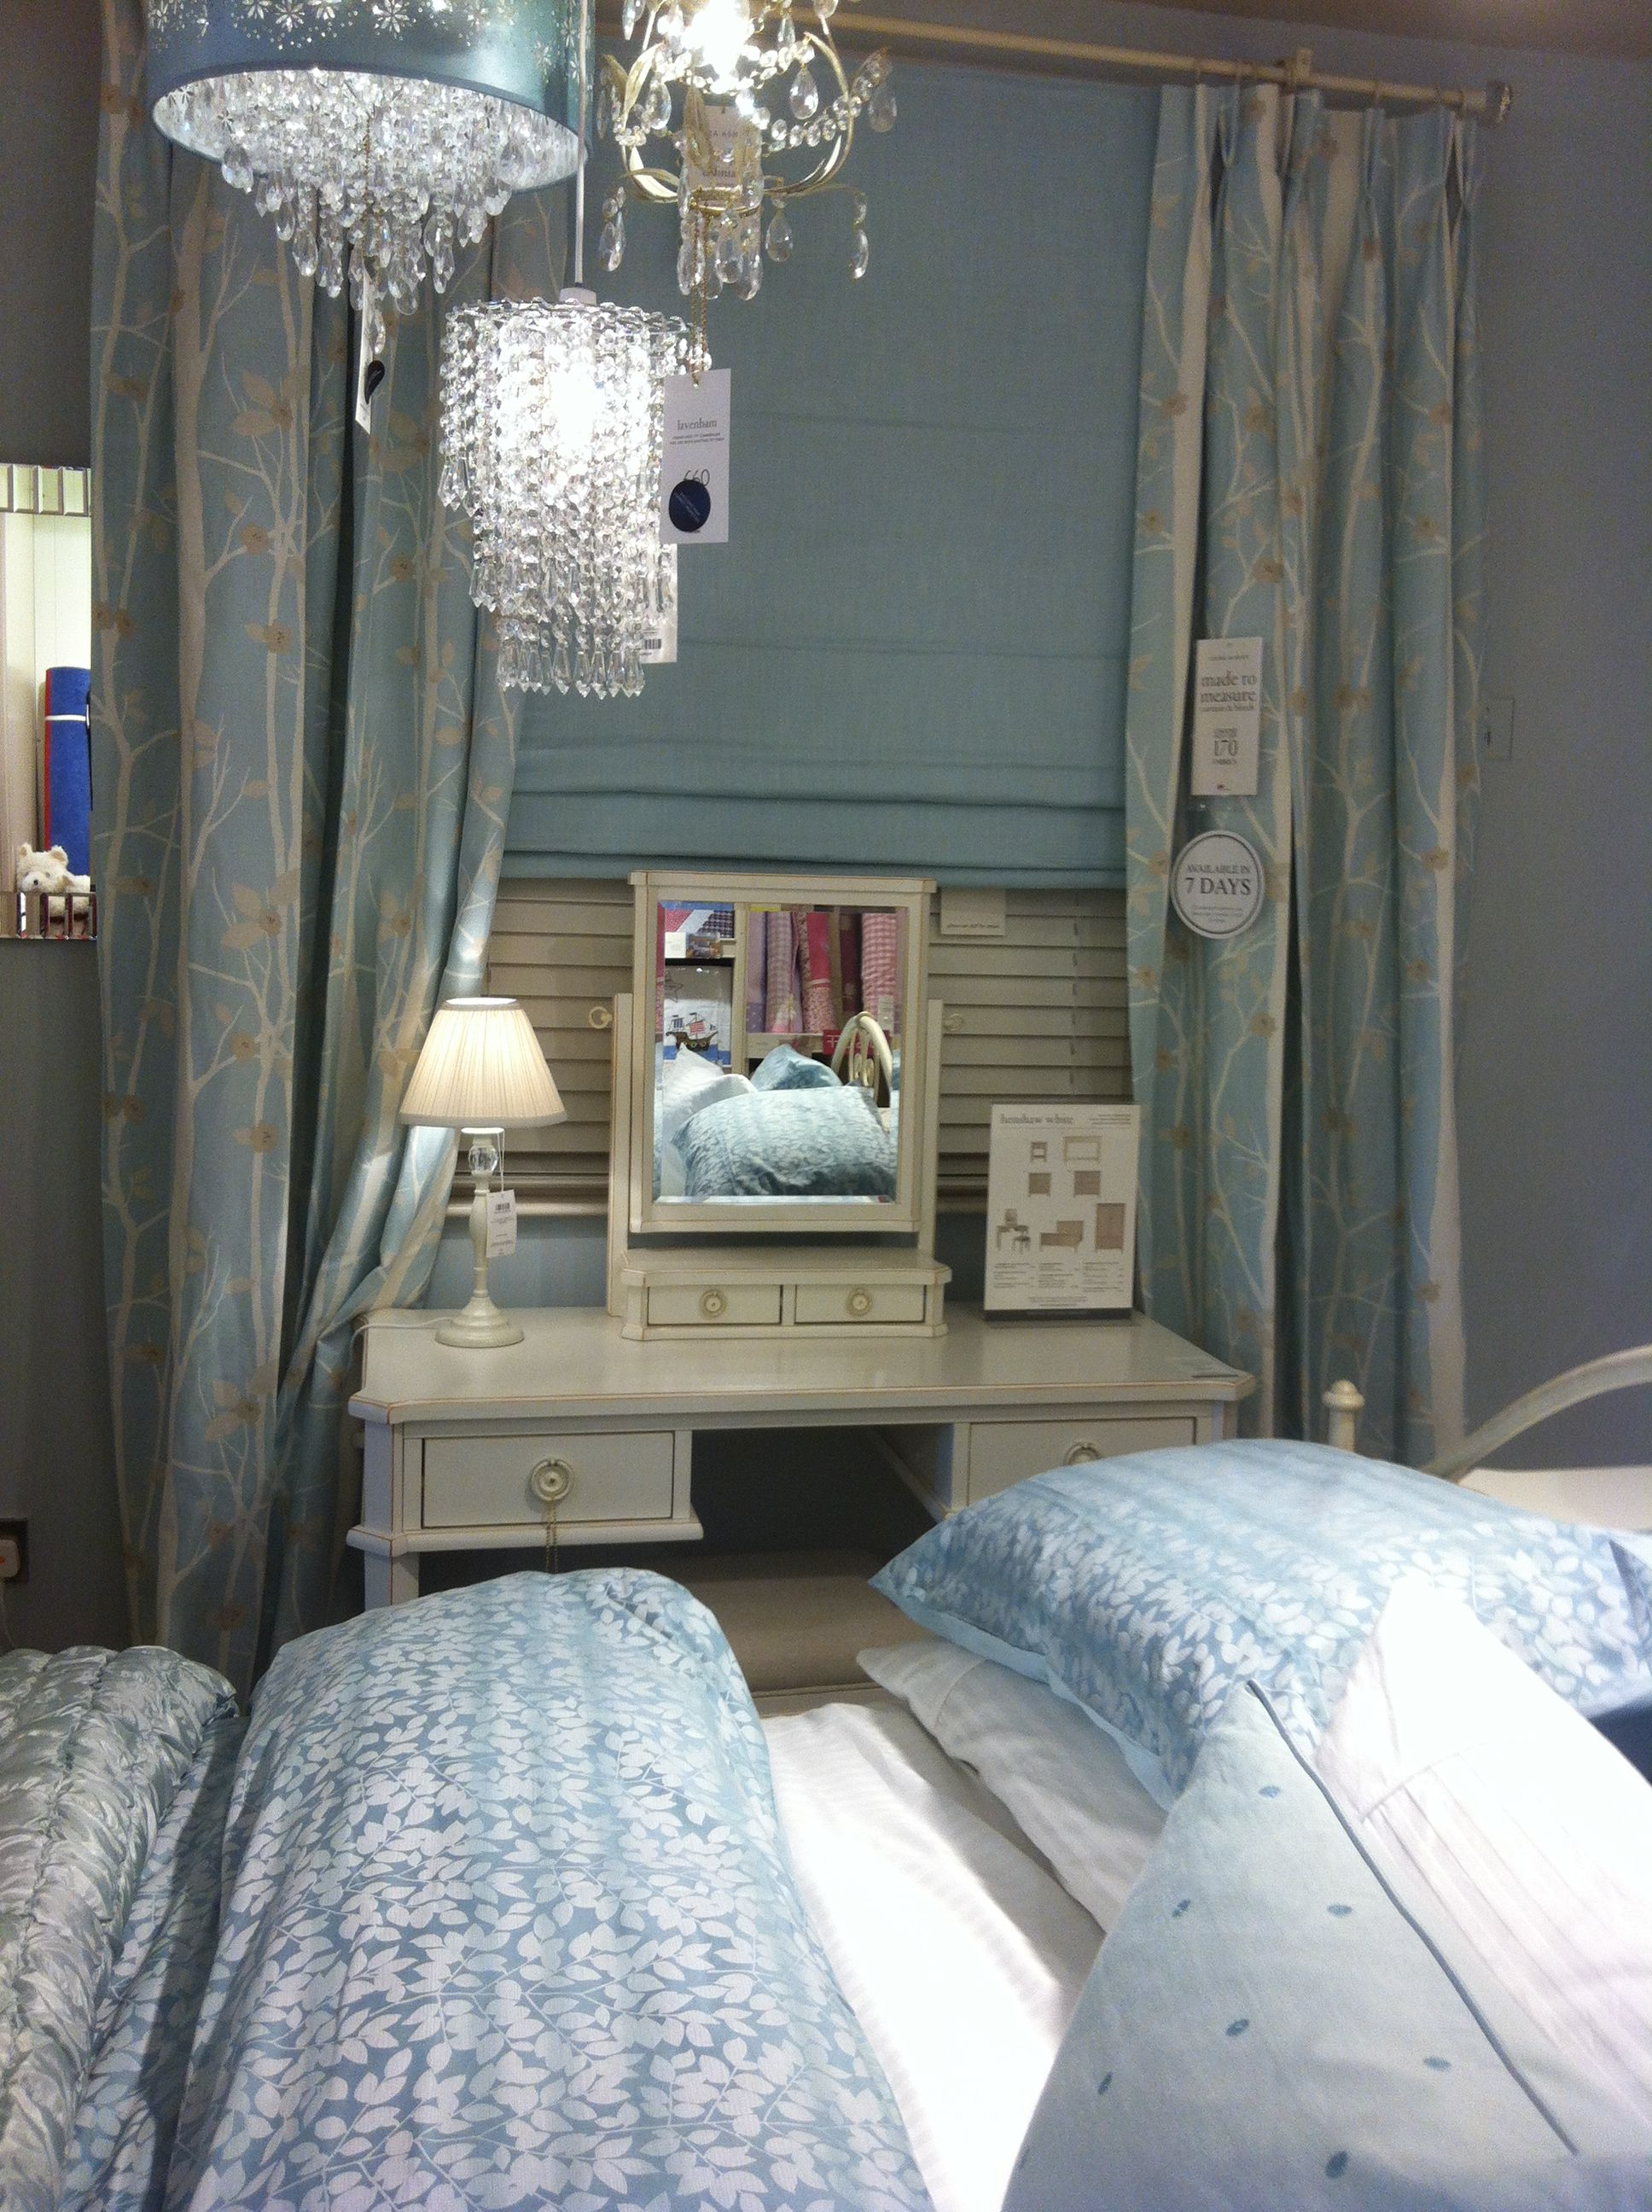 New Colours For Bedrooms My New Duck Egg Blue Bedroom Colour Scheme Already Have